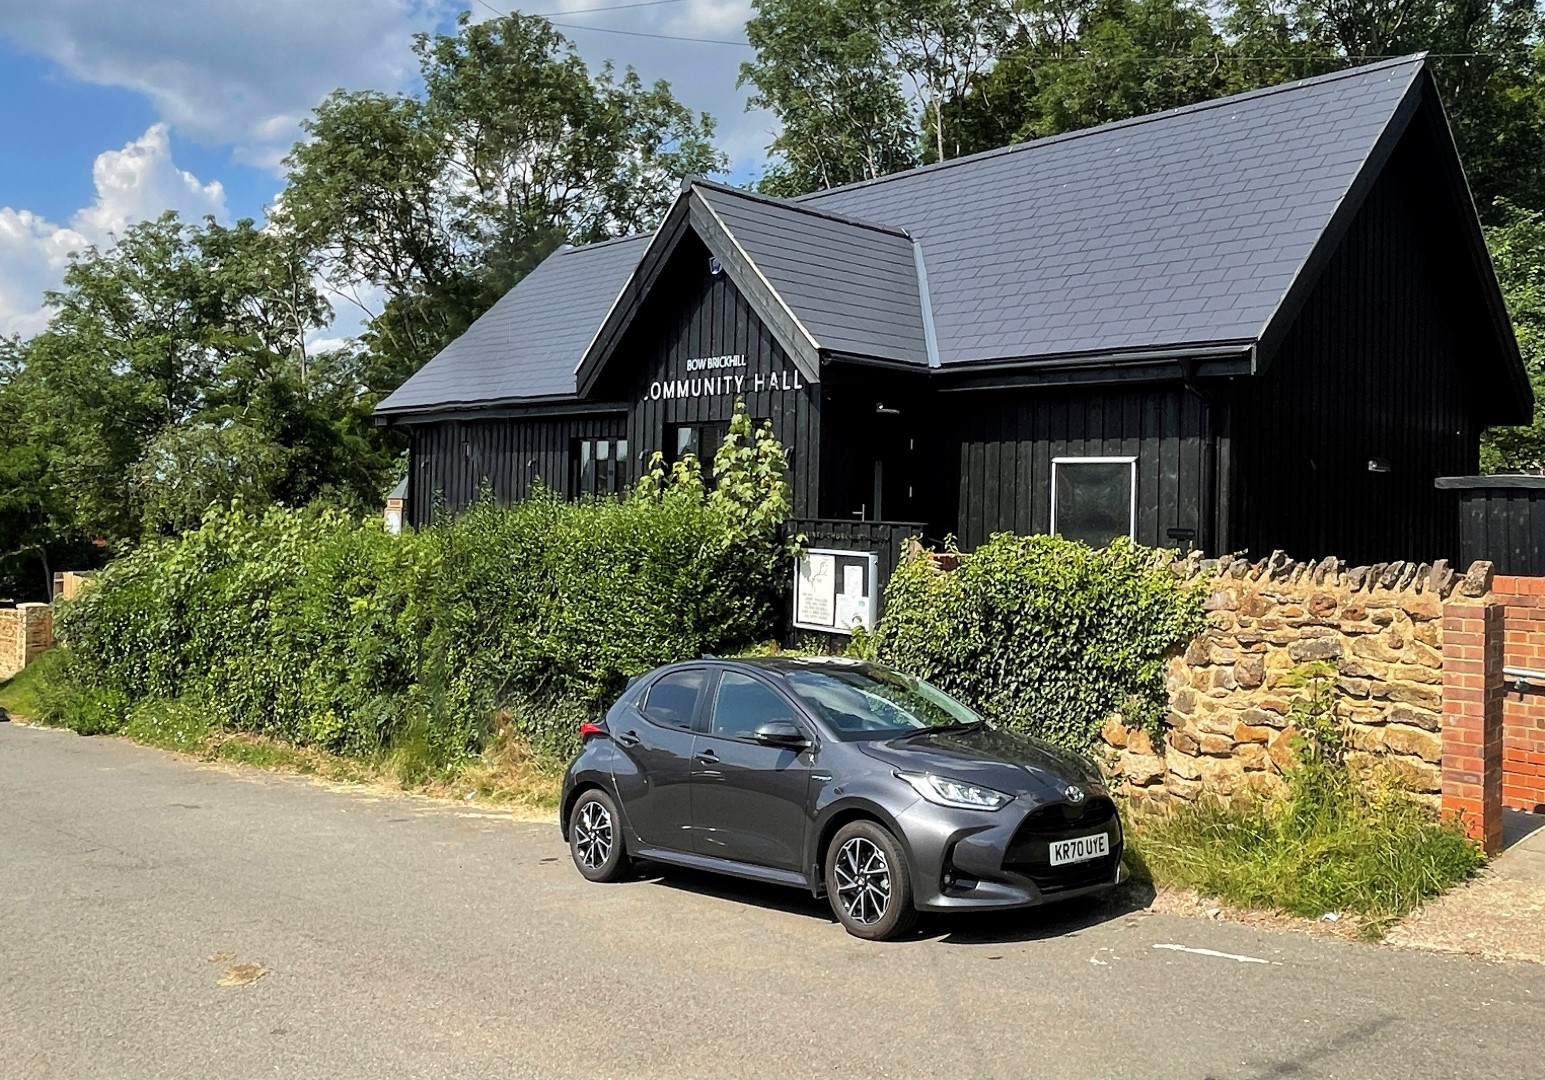 Bow-Brickhill-Community-Hall-The-View-From-The-Side-From-The-Road